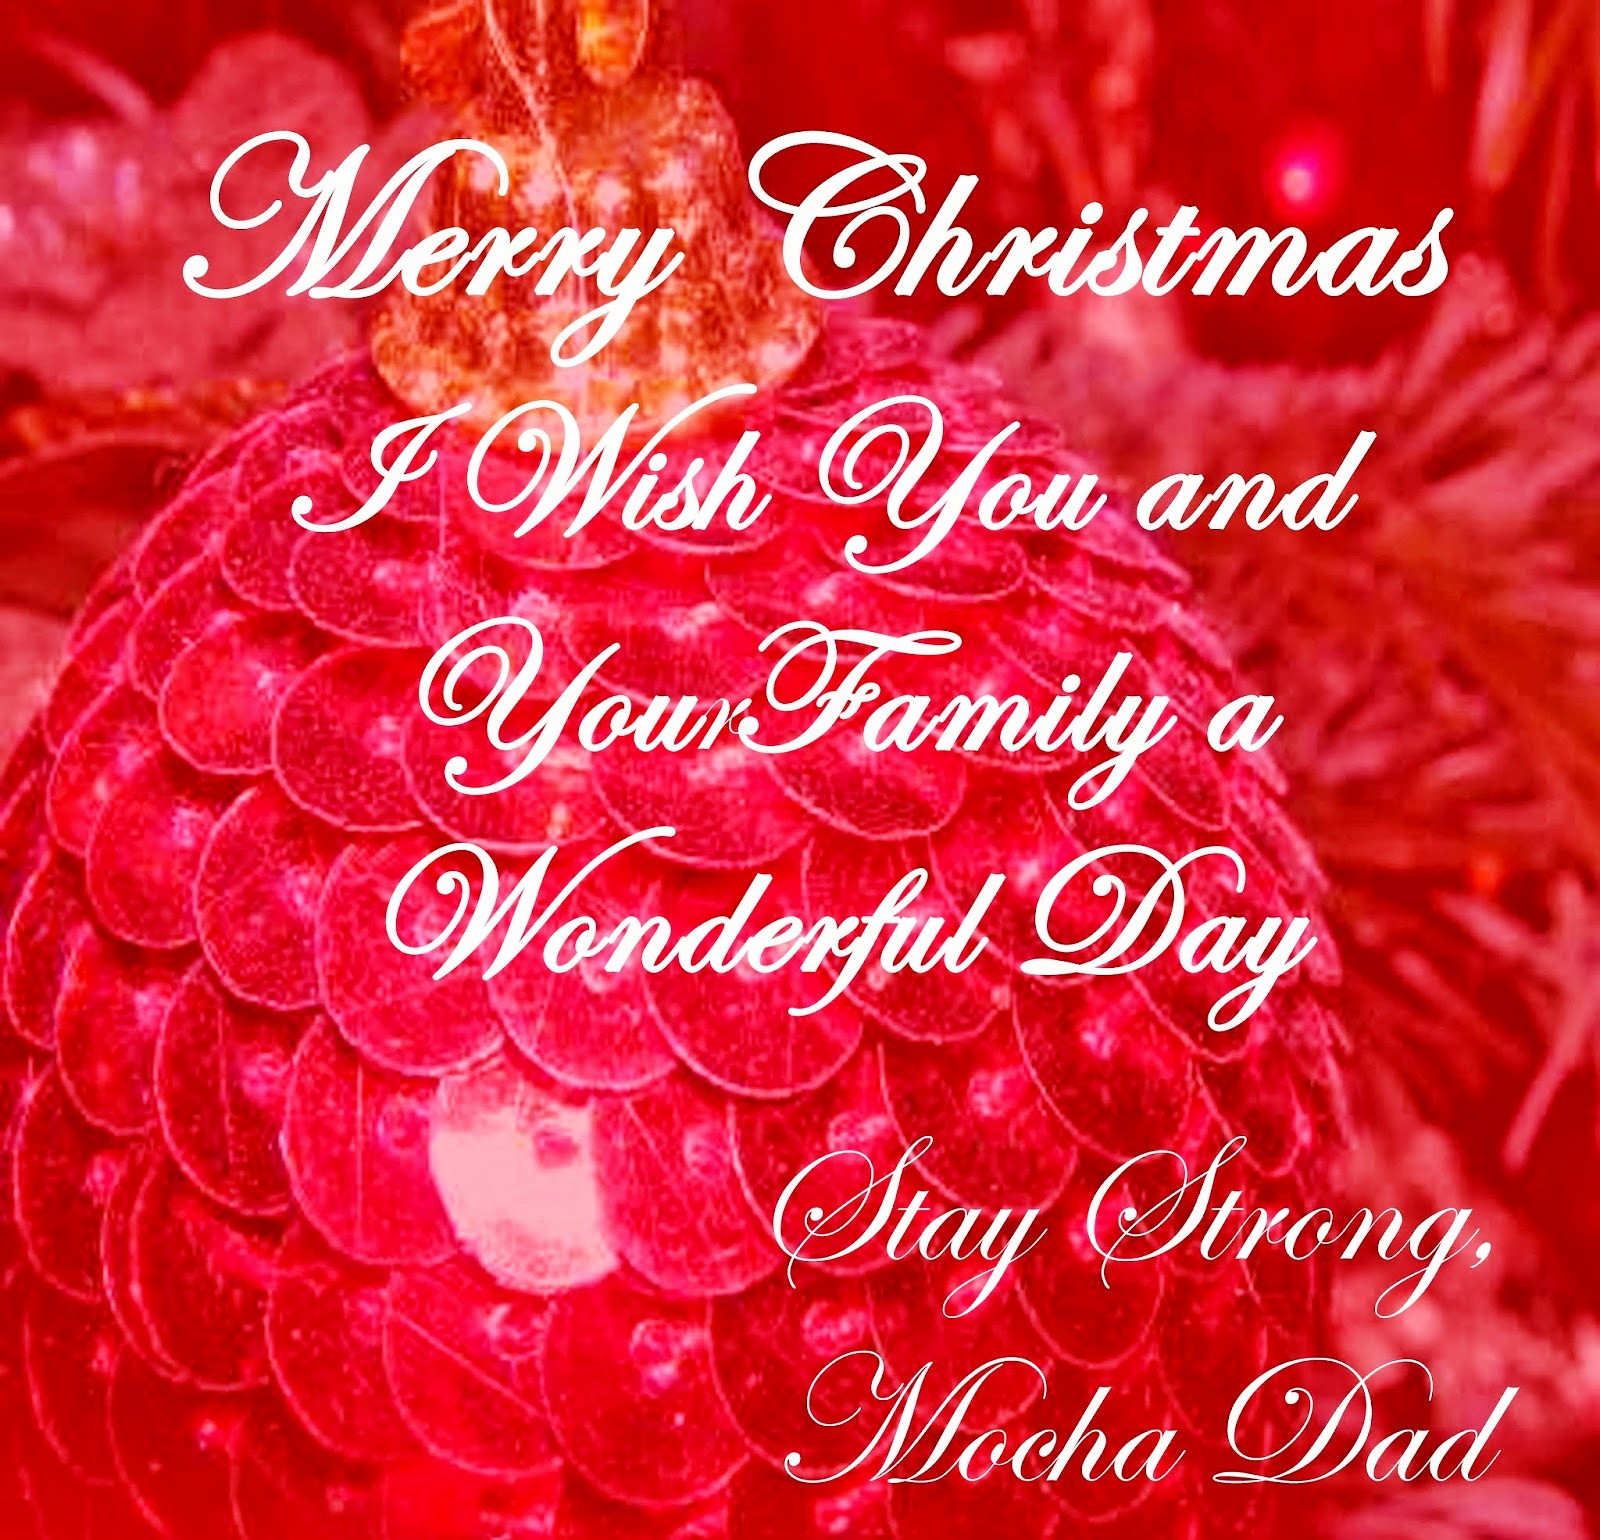 Christmas Quotes And Sayings  20 Merry Christmas Quotes 2014